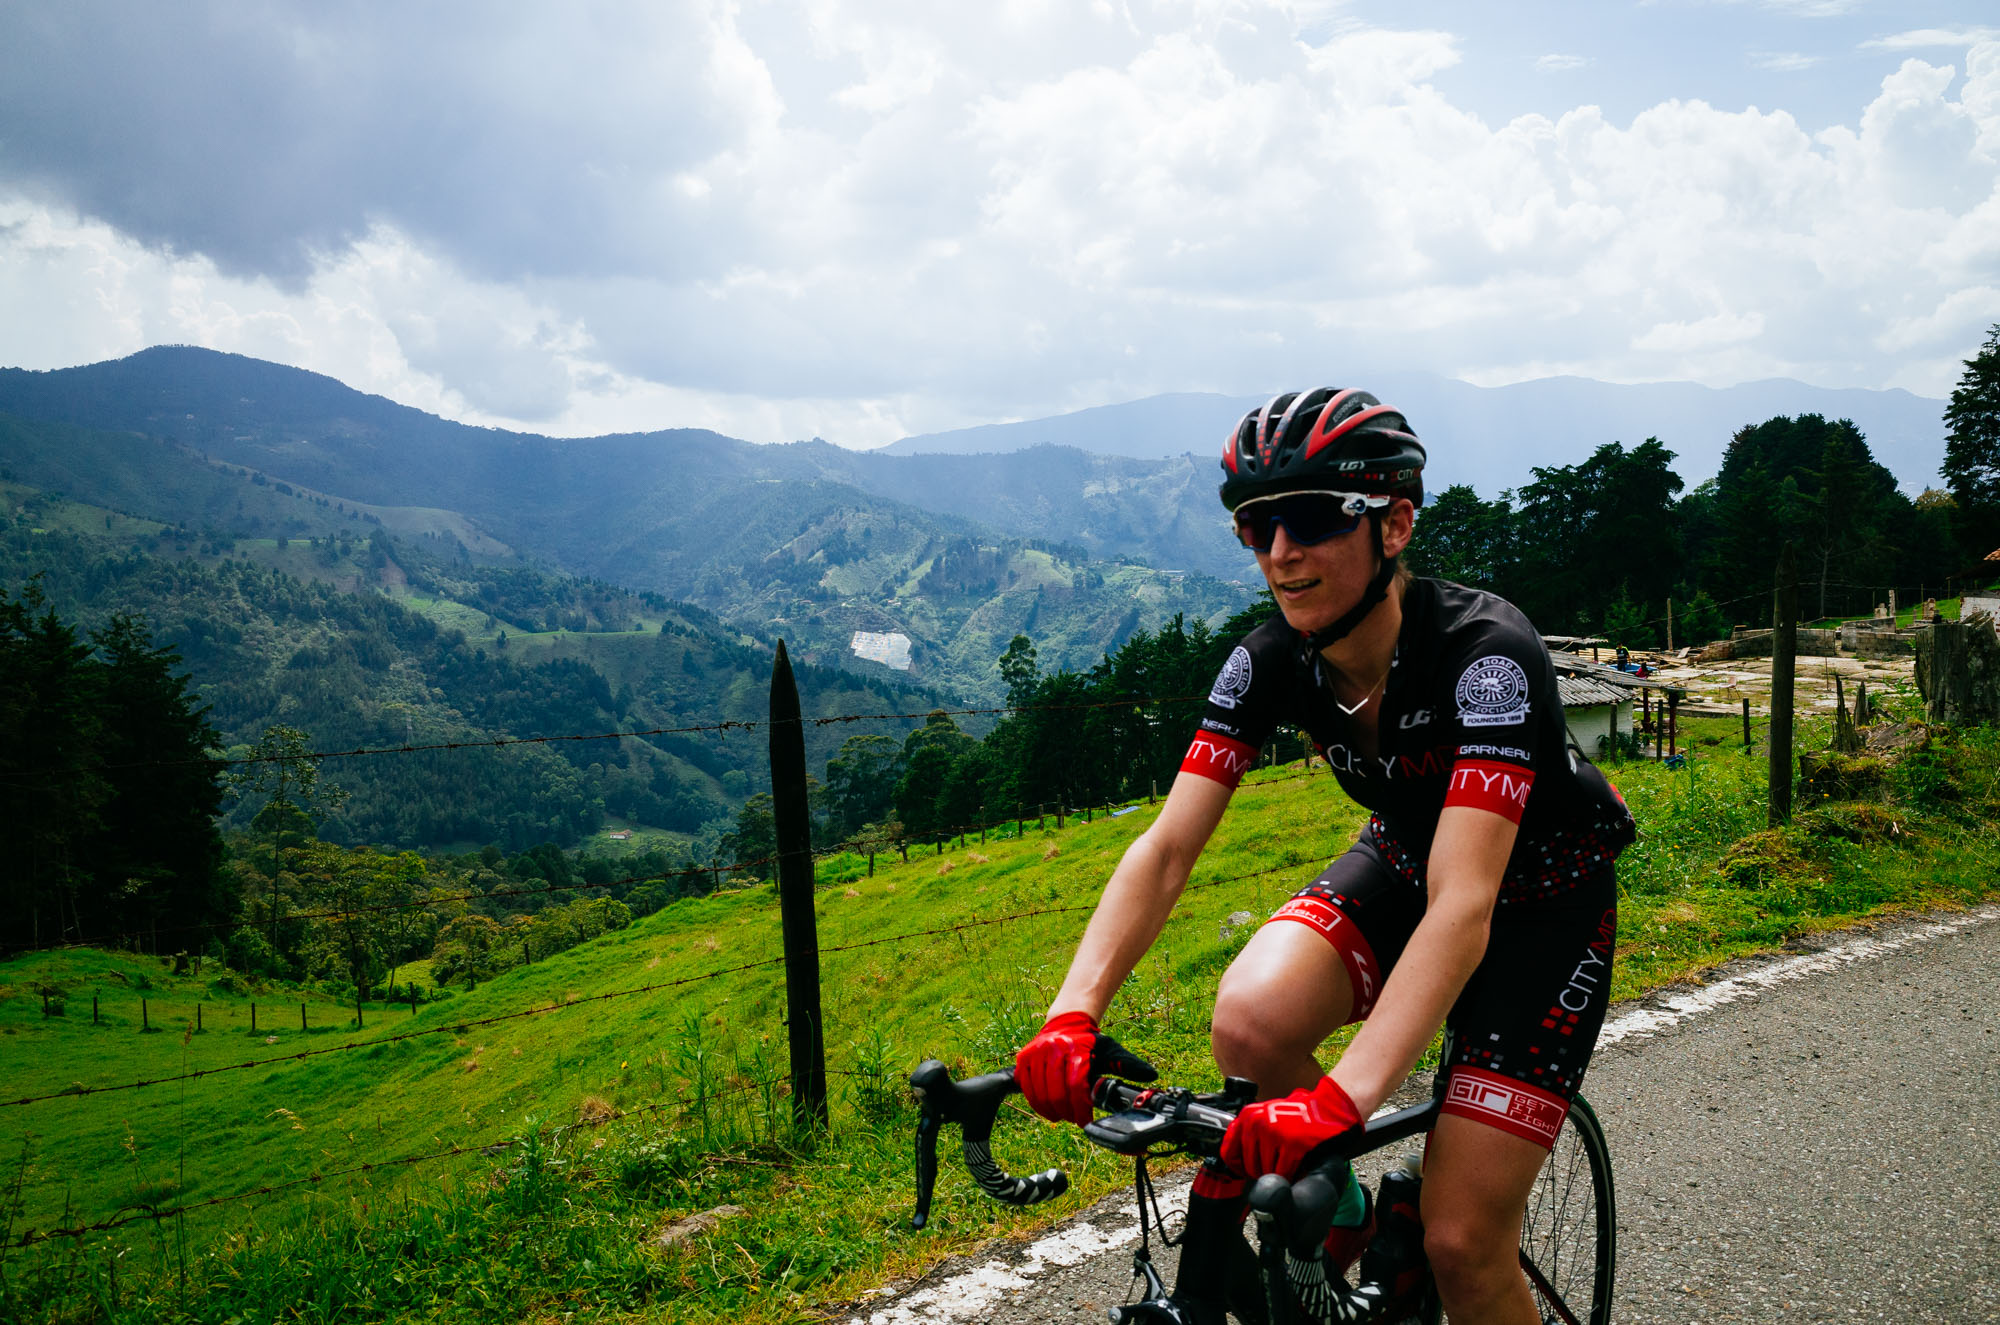 to-be-determined-photo-rhetoric-cycling-in-colombia-1002.jpg